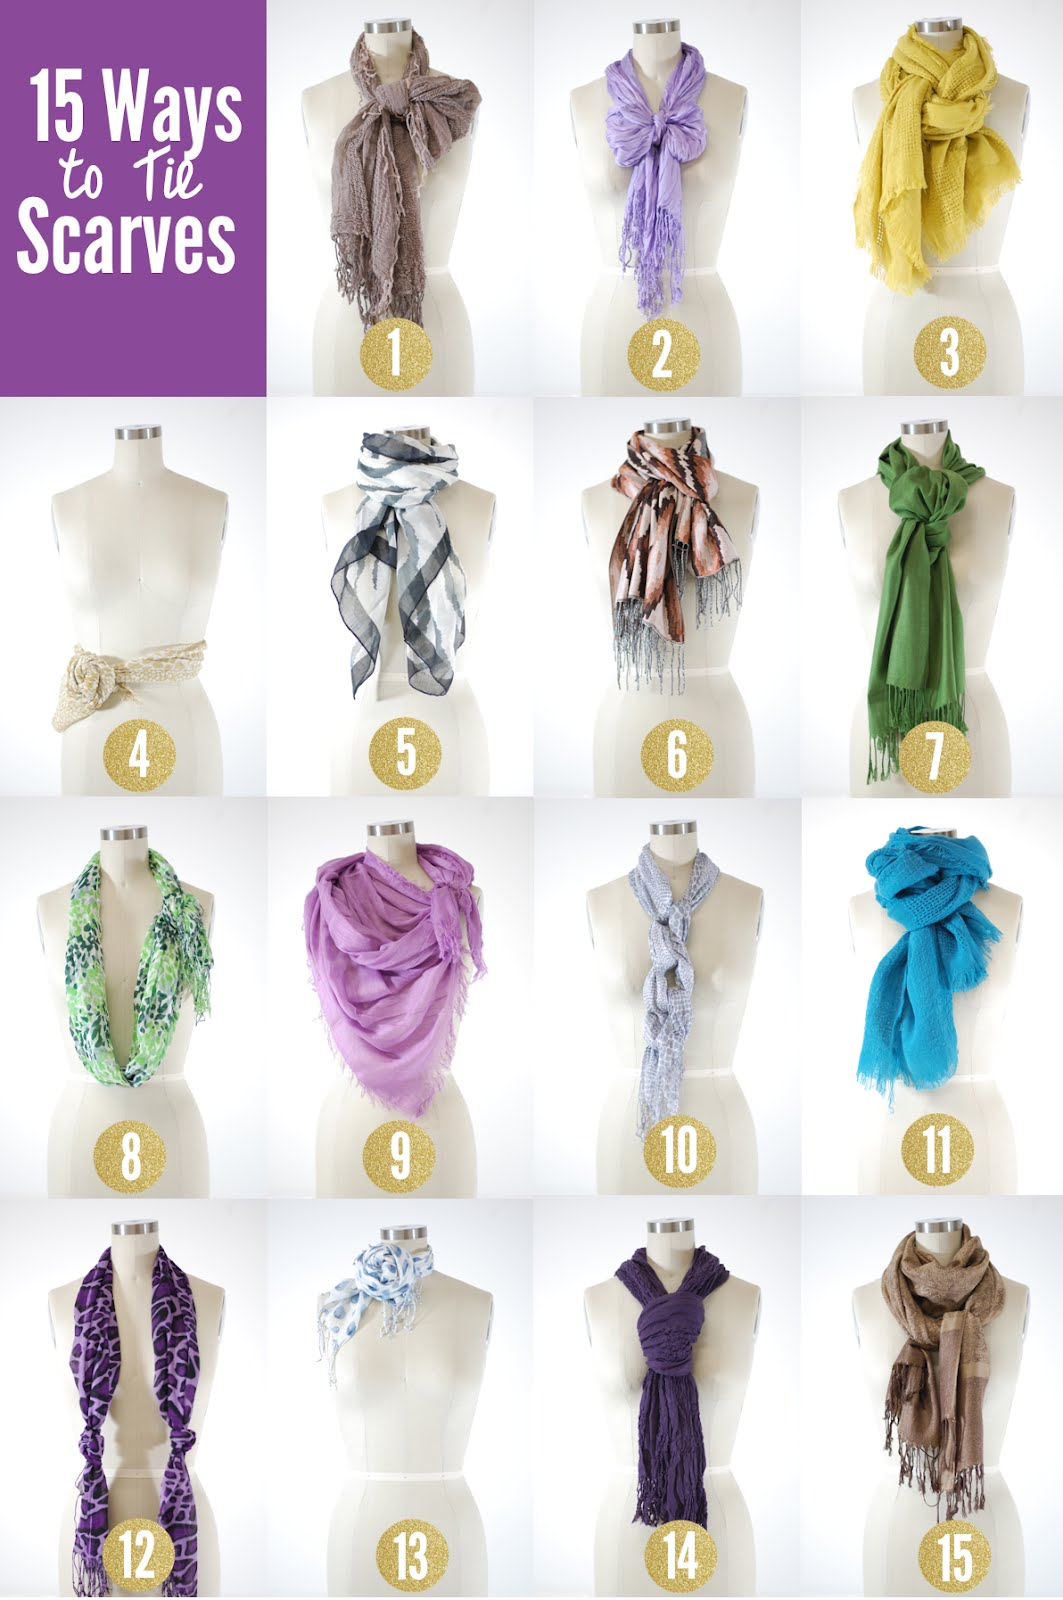 15 Ways To Tie Scarves Stars For Streetlights